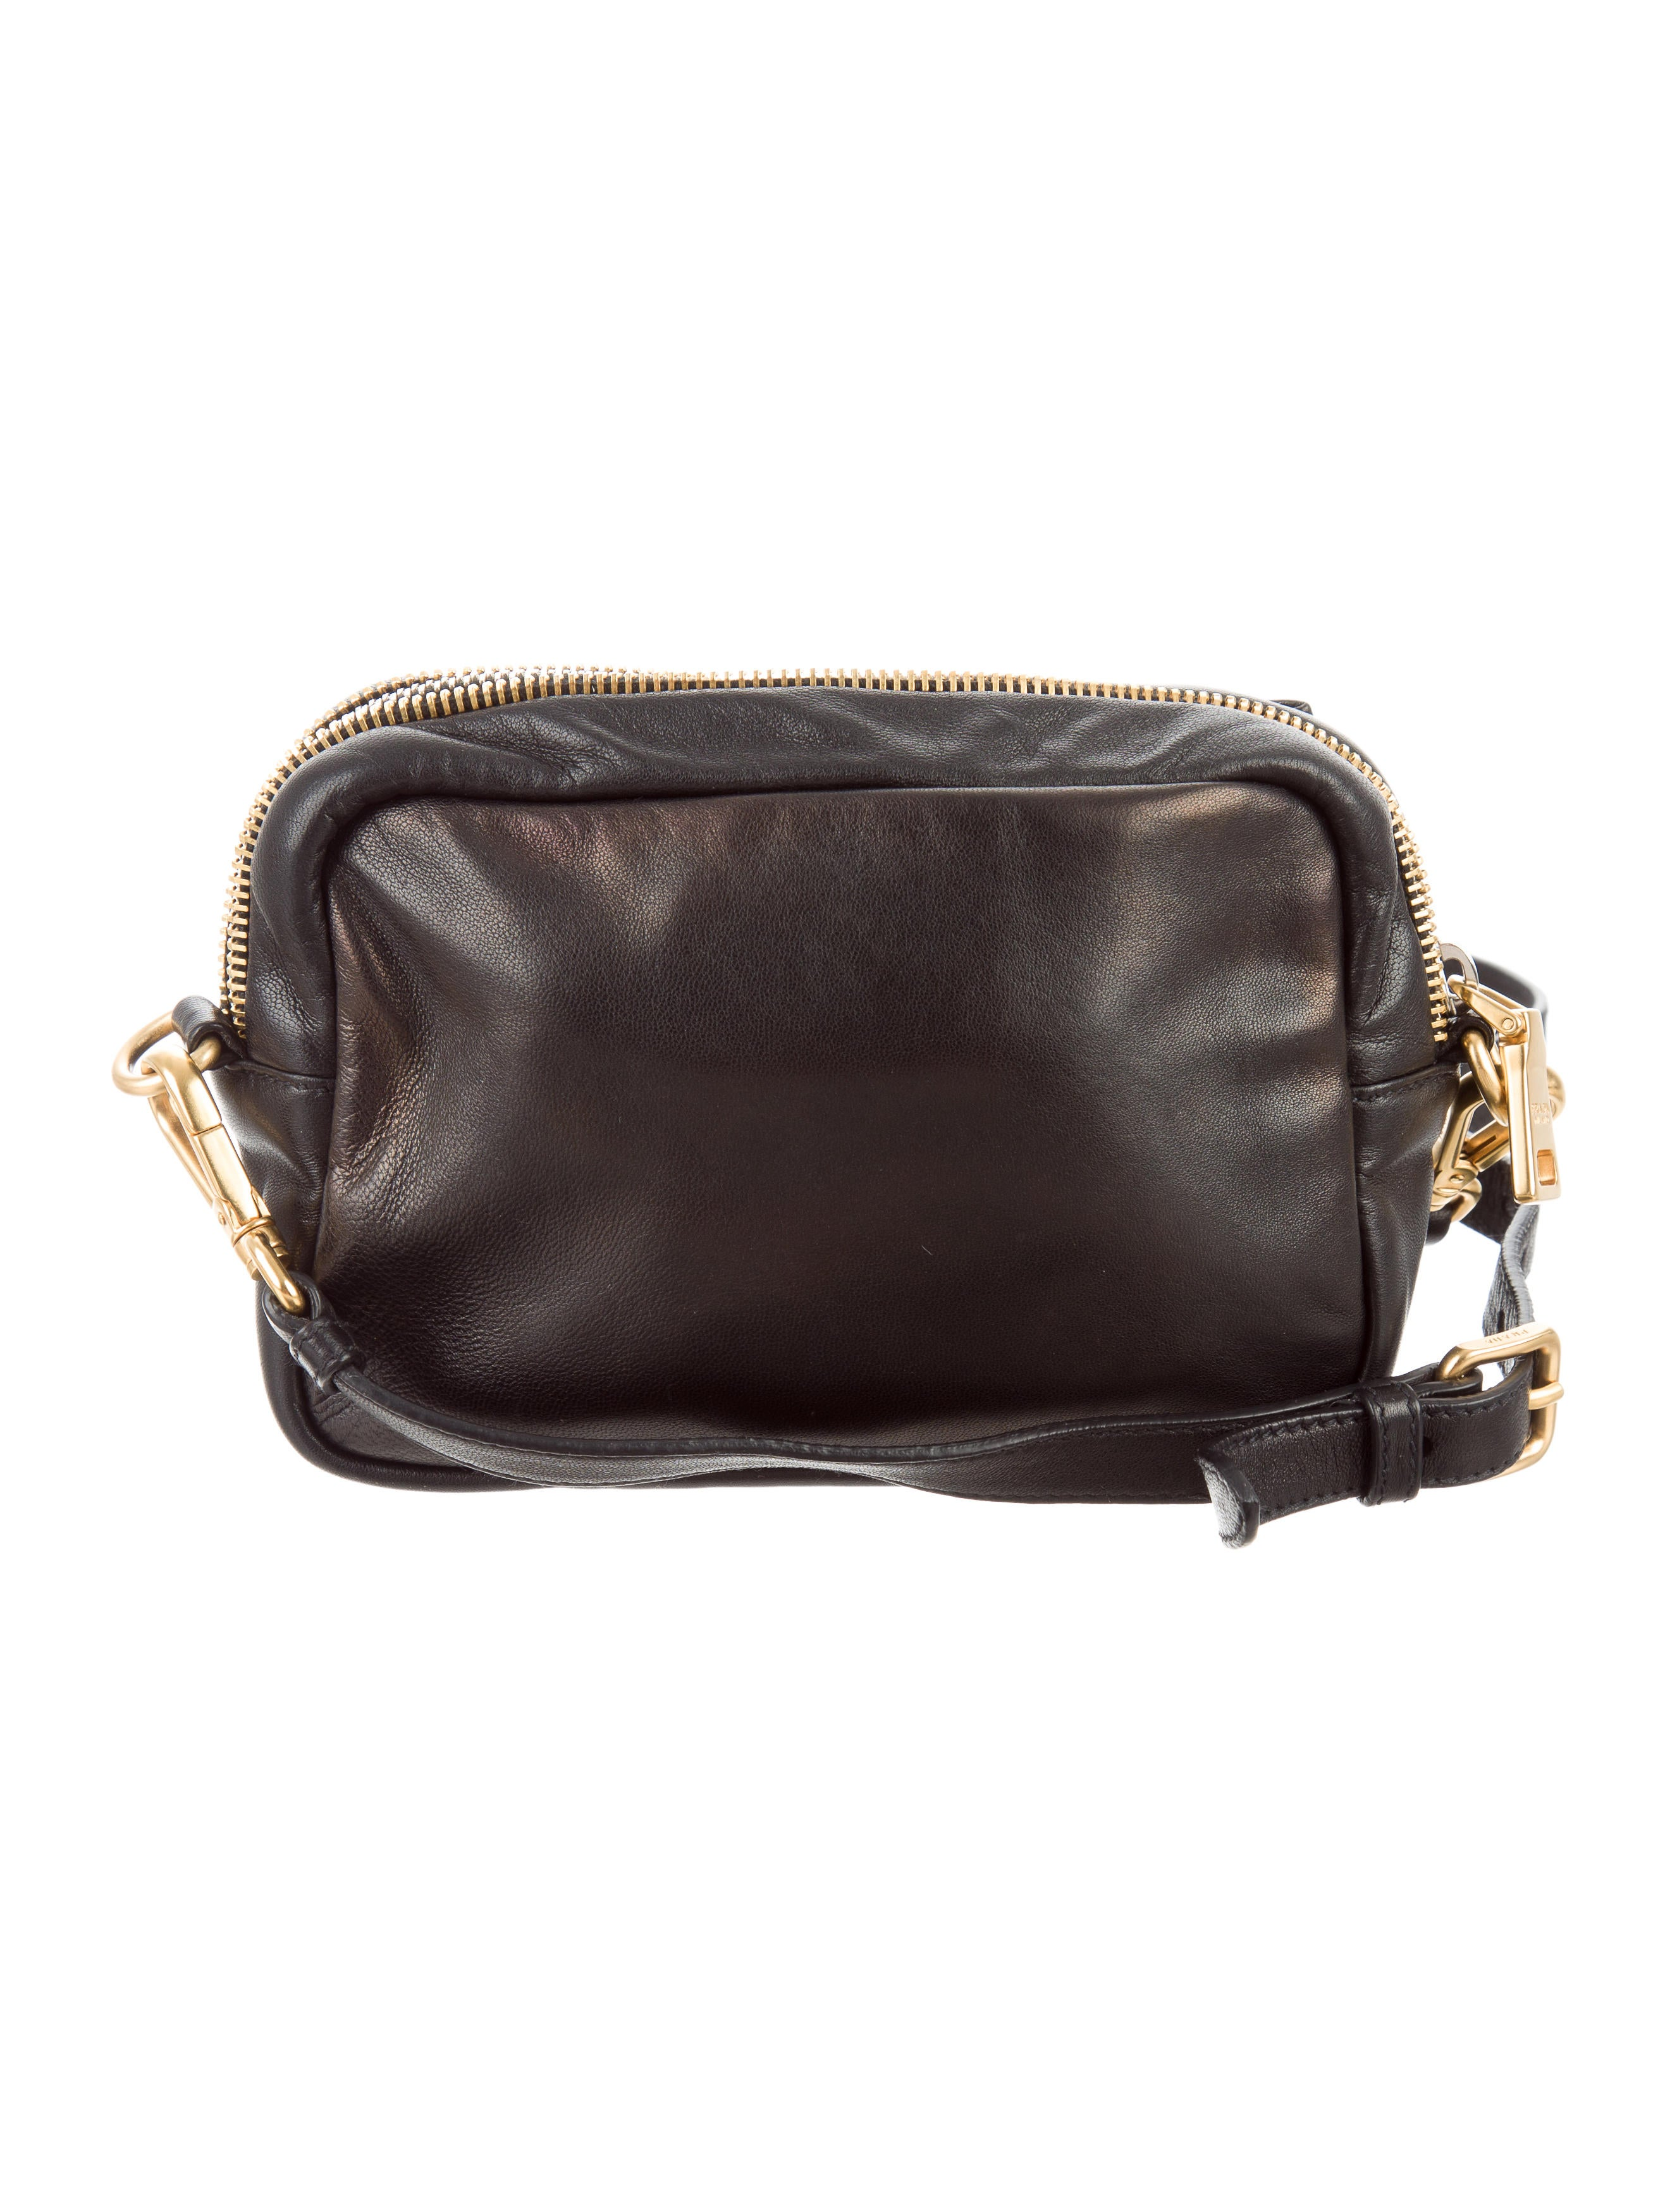 b7c8432b2e97 Prada Purse With Bow | Stanford Center for Opportunity Policy in ...